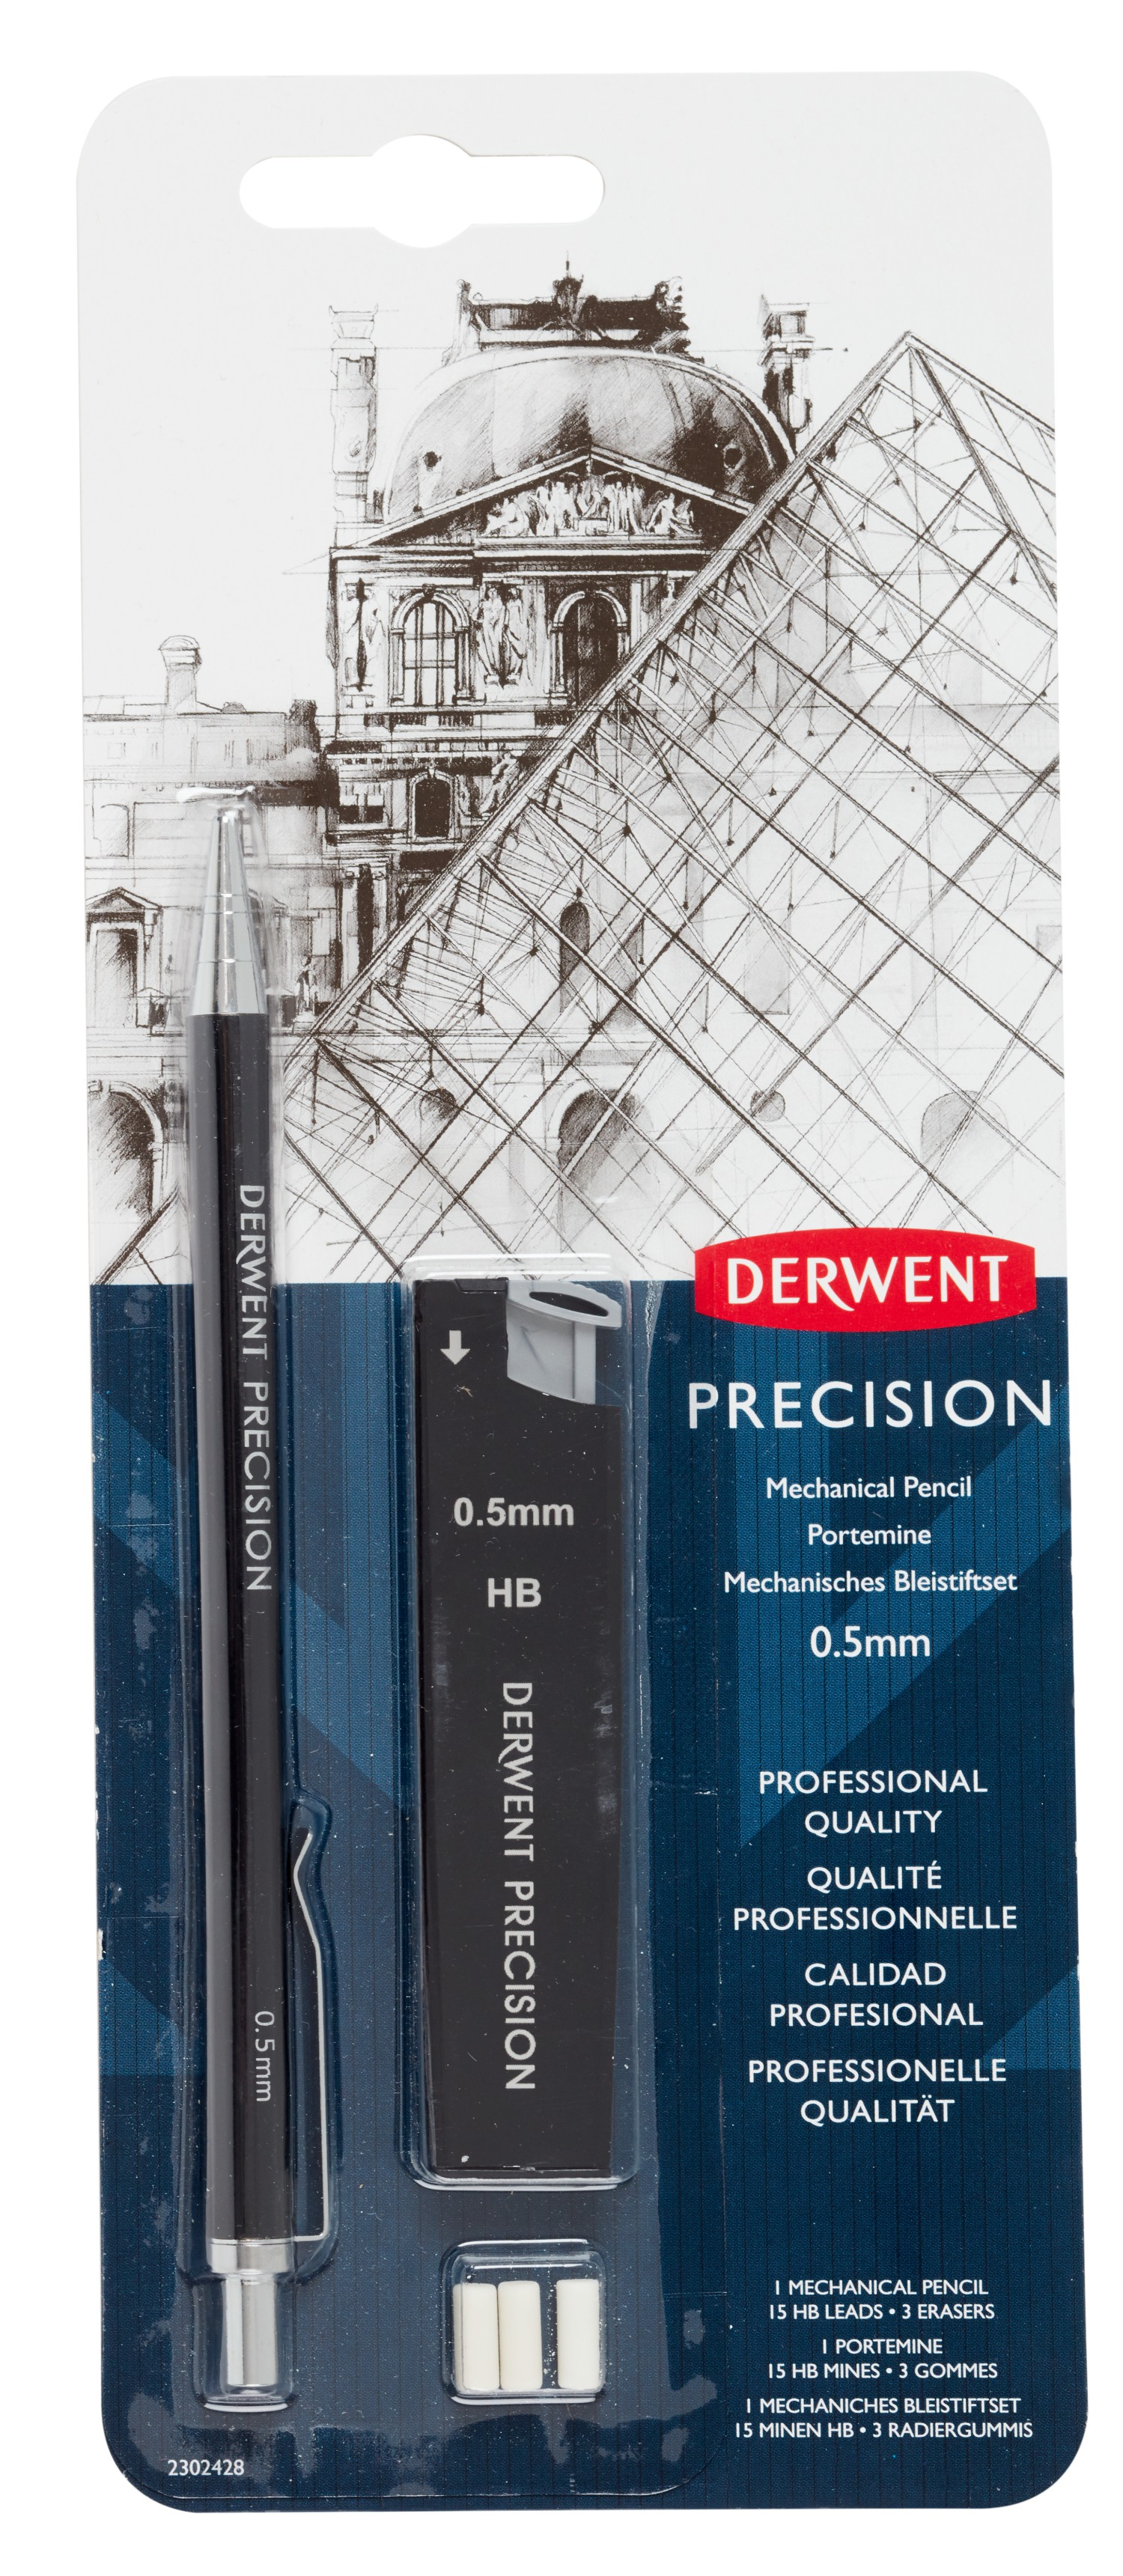 DERWENT MECHANICAL PENCIL 0.5 HB BLISTER SET 2302428